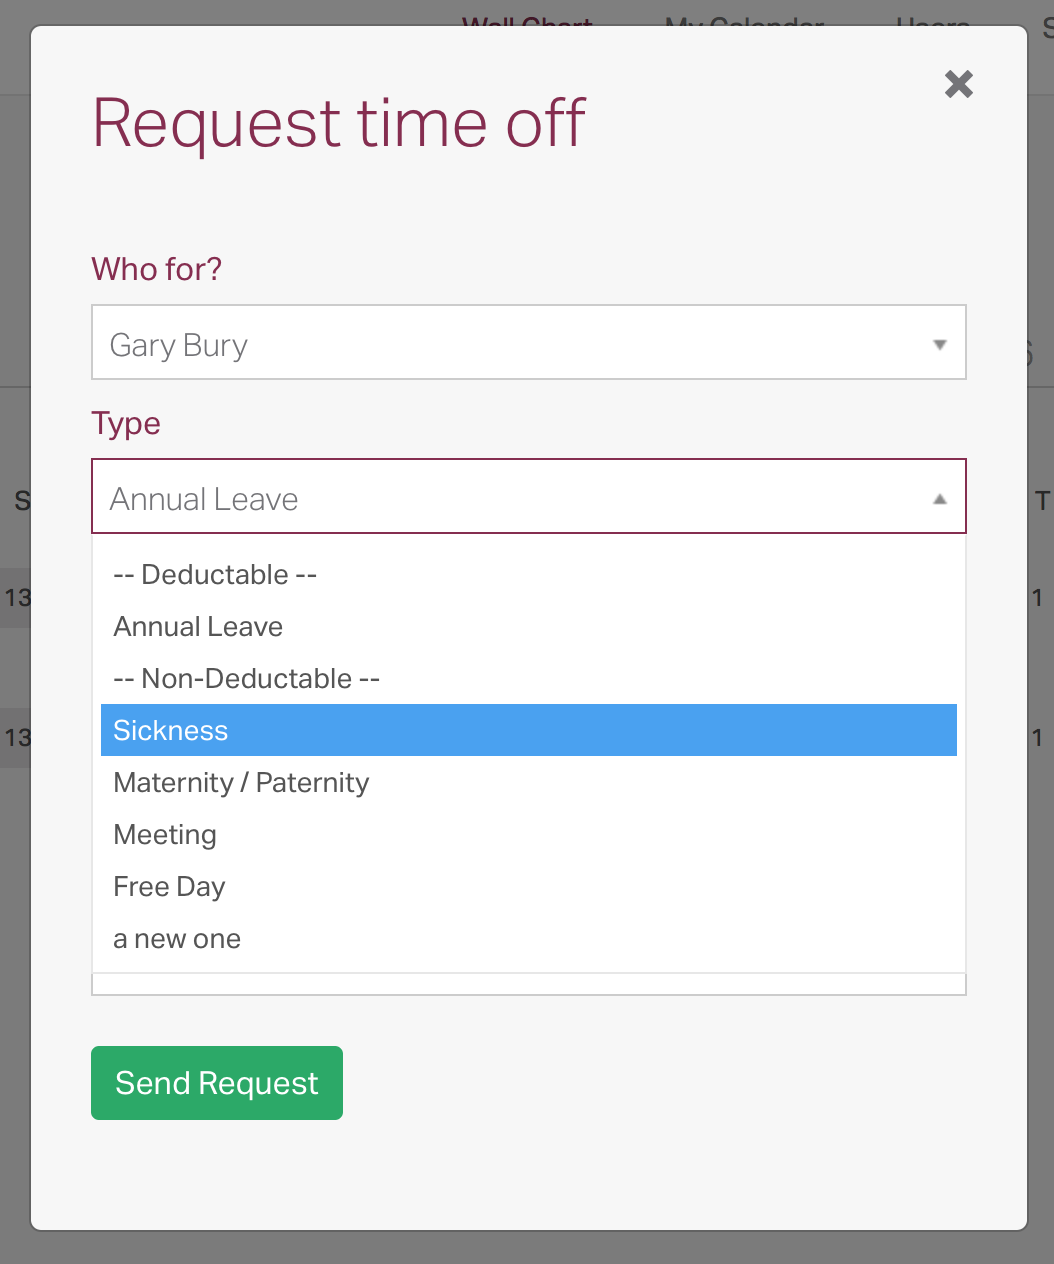 Sick Leave - Recording and Reporting – TIMETASTIC